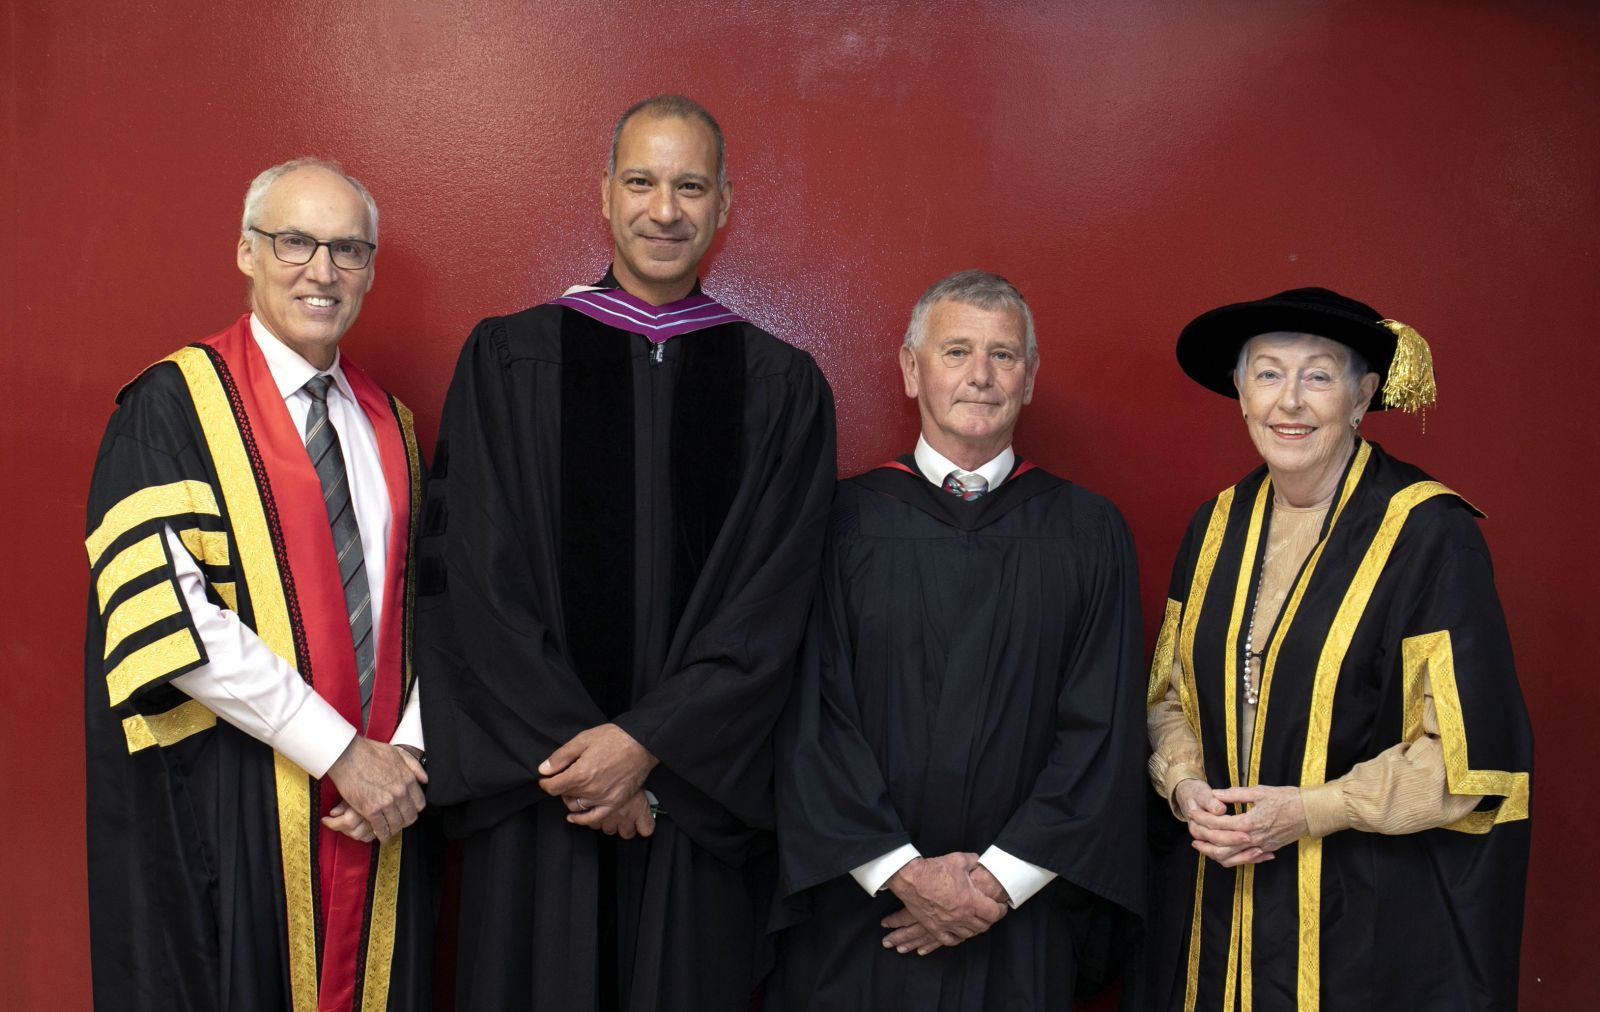 From left, U of G President Franco Vaccarino, Prof. Tarek Saleh, Chair of the Department of Biomedical Sciences, University of Guelph, Prof. Allan King, University Professor Emeritus, and U of G Chancellor Martha Billes.